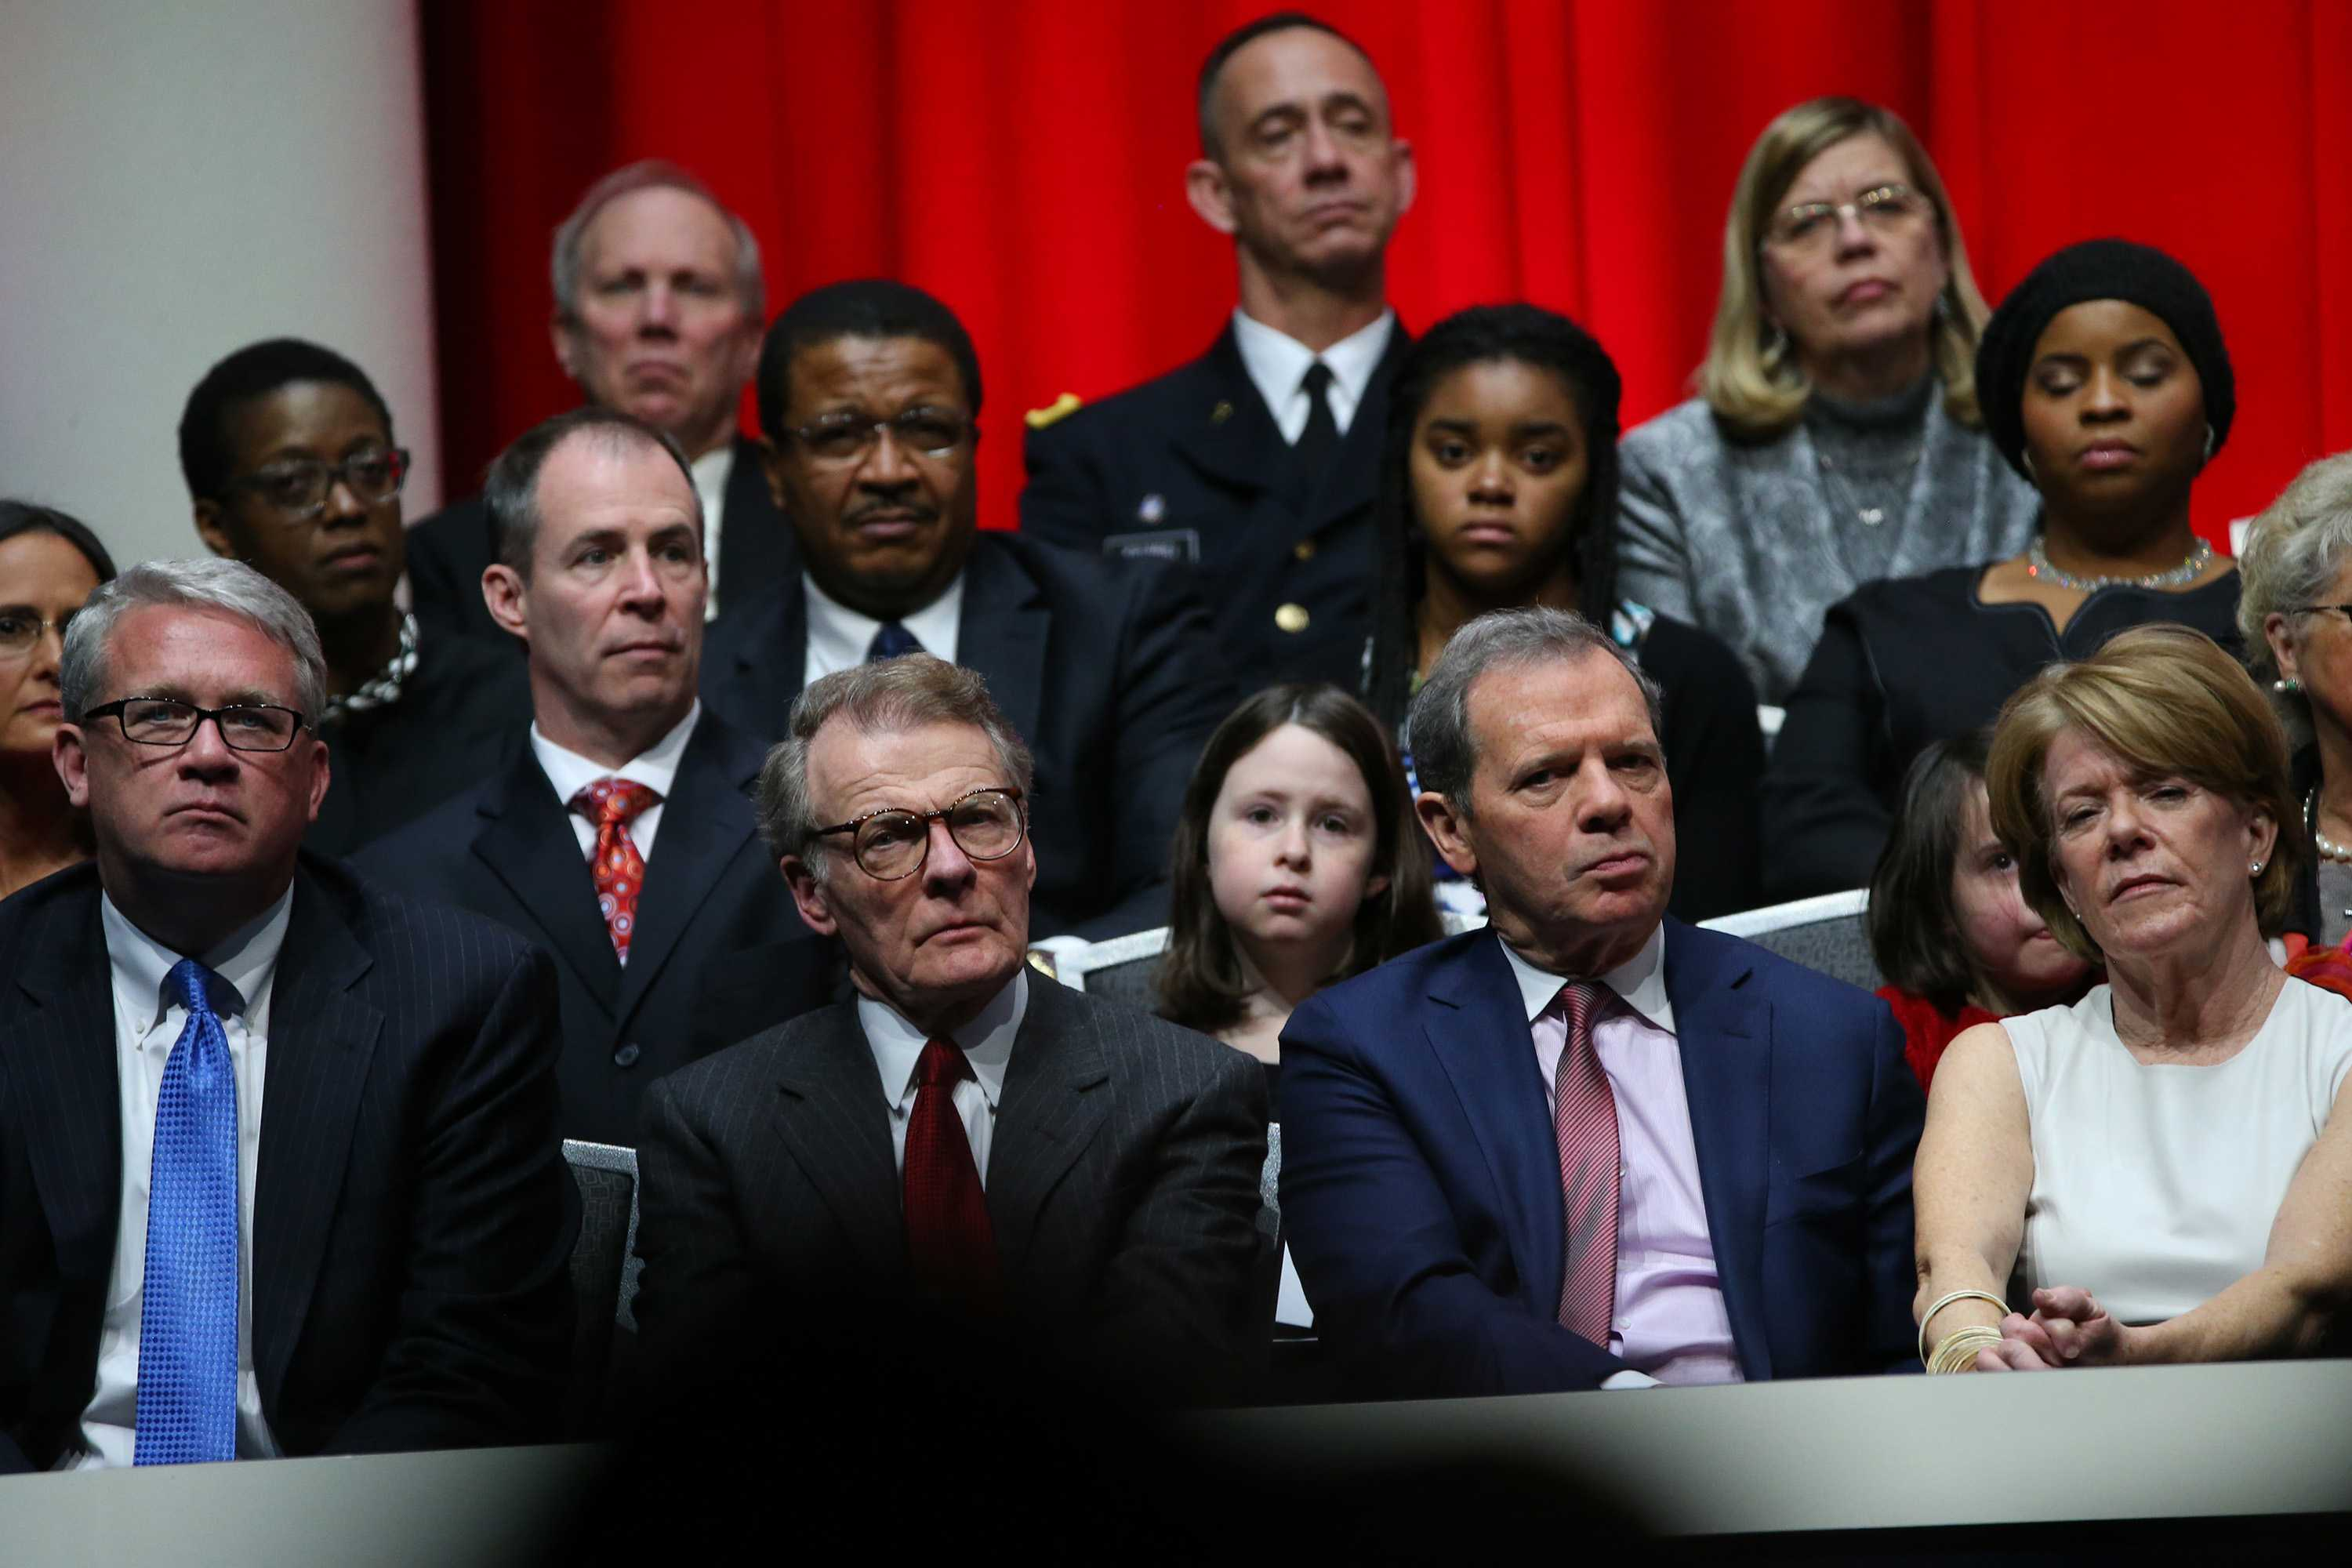 Speaker Mike Madigan and Senate President John Cullerton listen as Gov. Bruce Rauner speaks about making changes in the state on Monday Jan. 12, 2015 at the Prairie Capital Convention Center in Springfield, Ill. (Nancy Stone/Chicago Tribune/TNS)